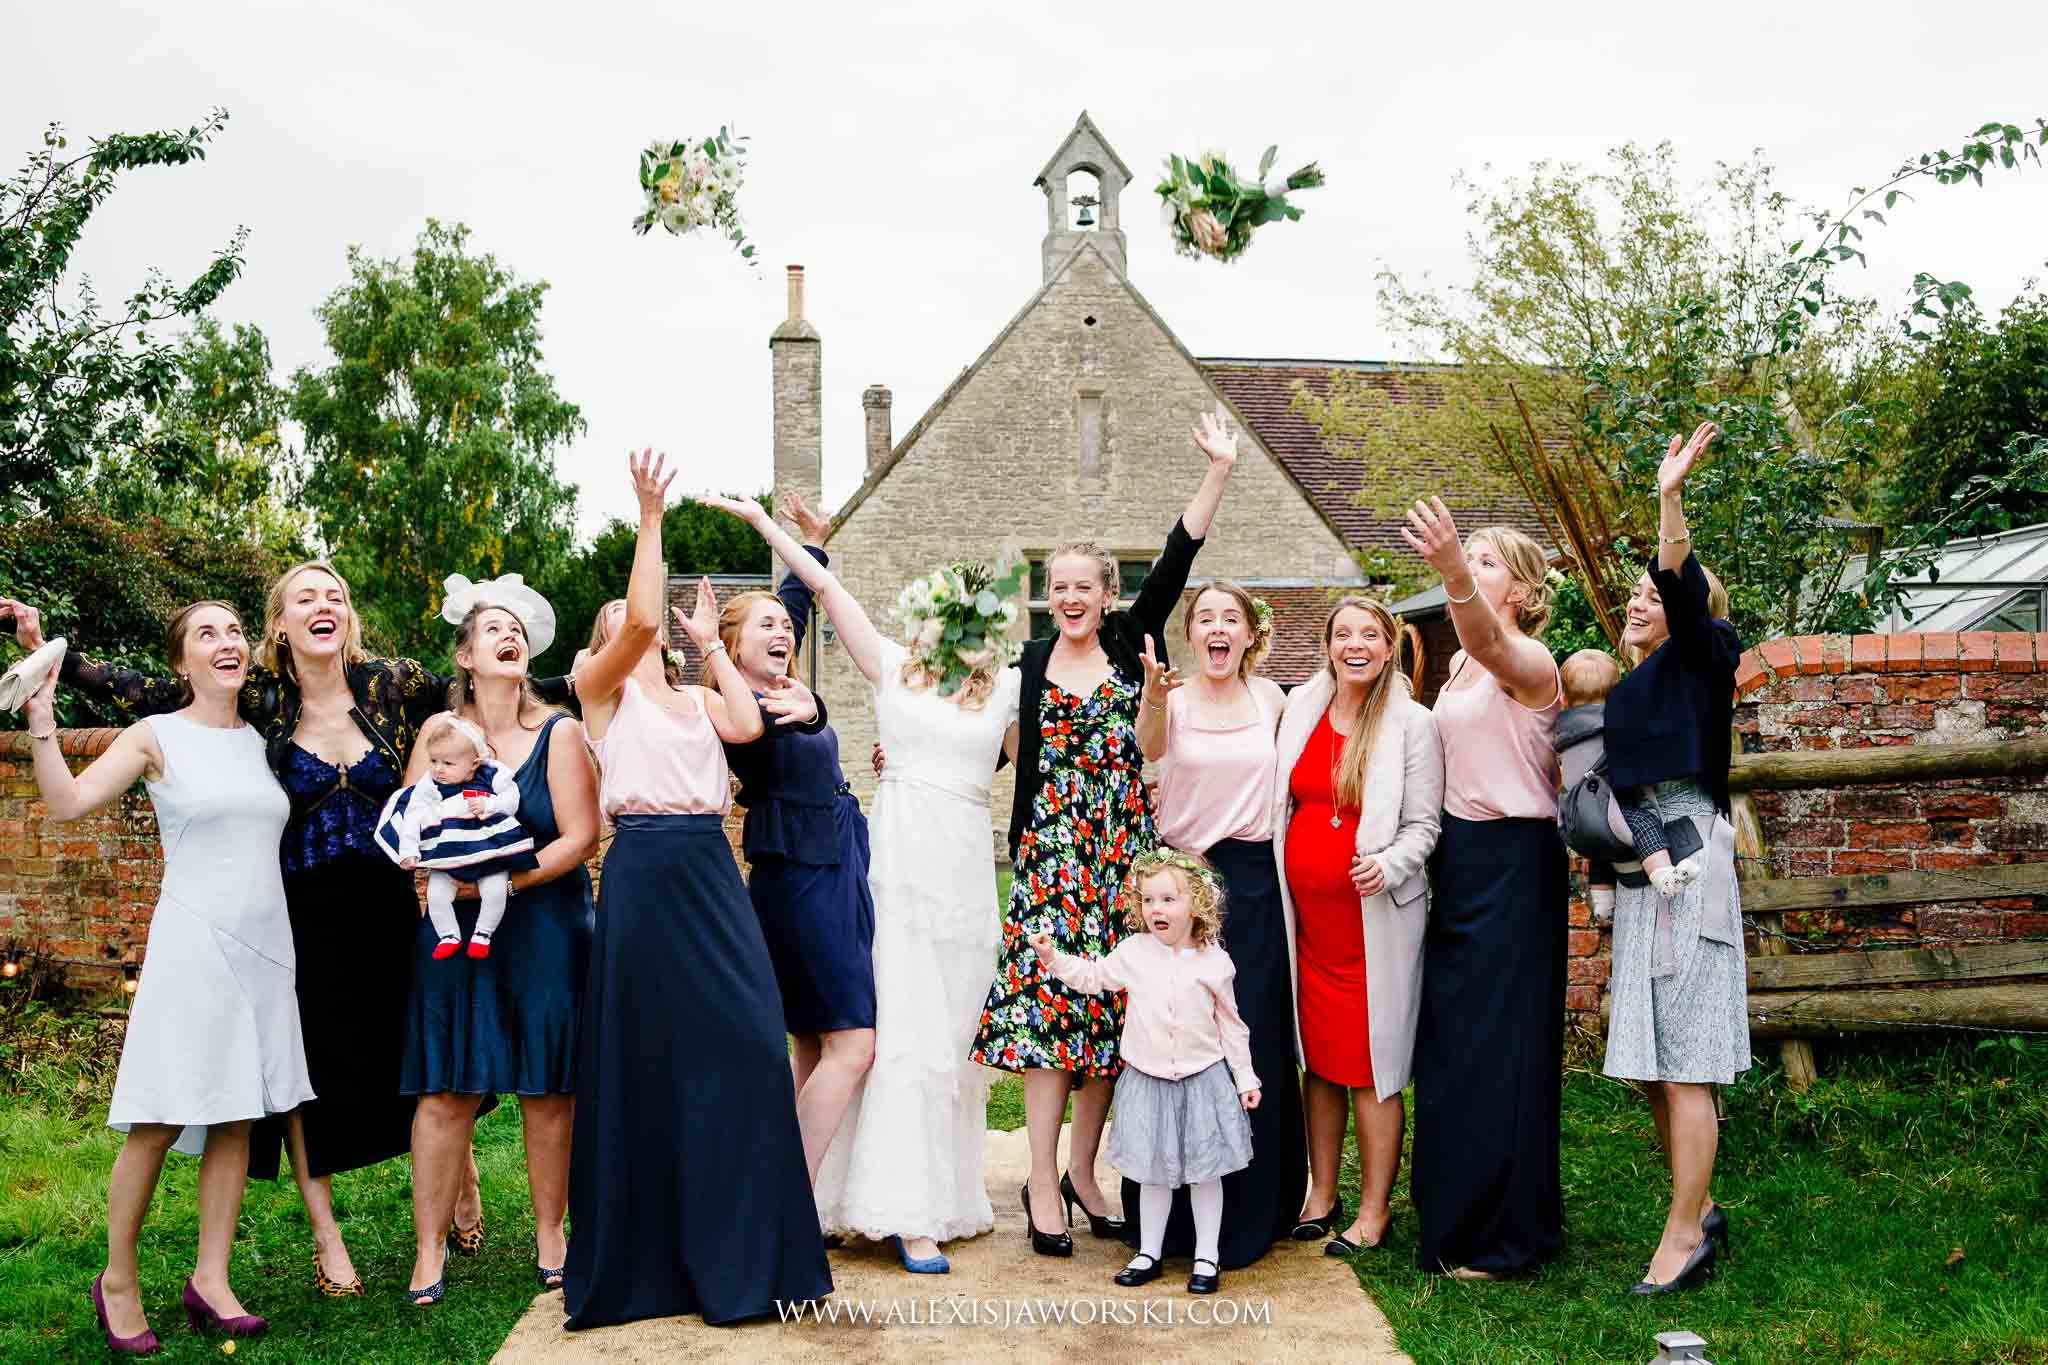 throwing bouquets in the air